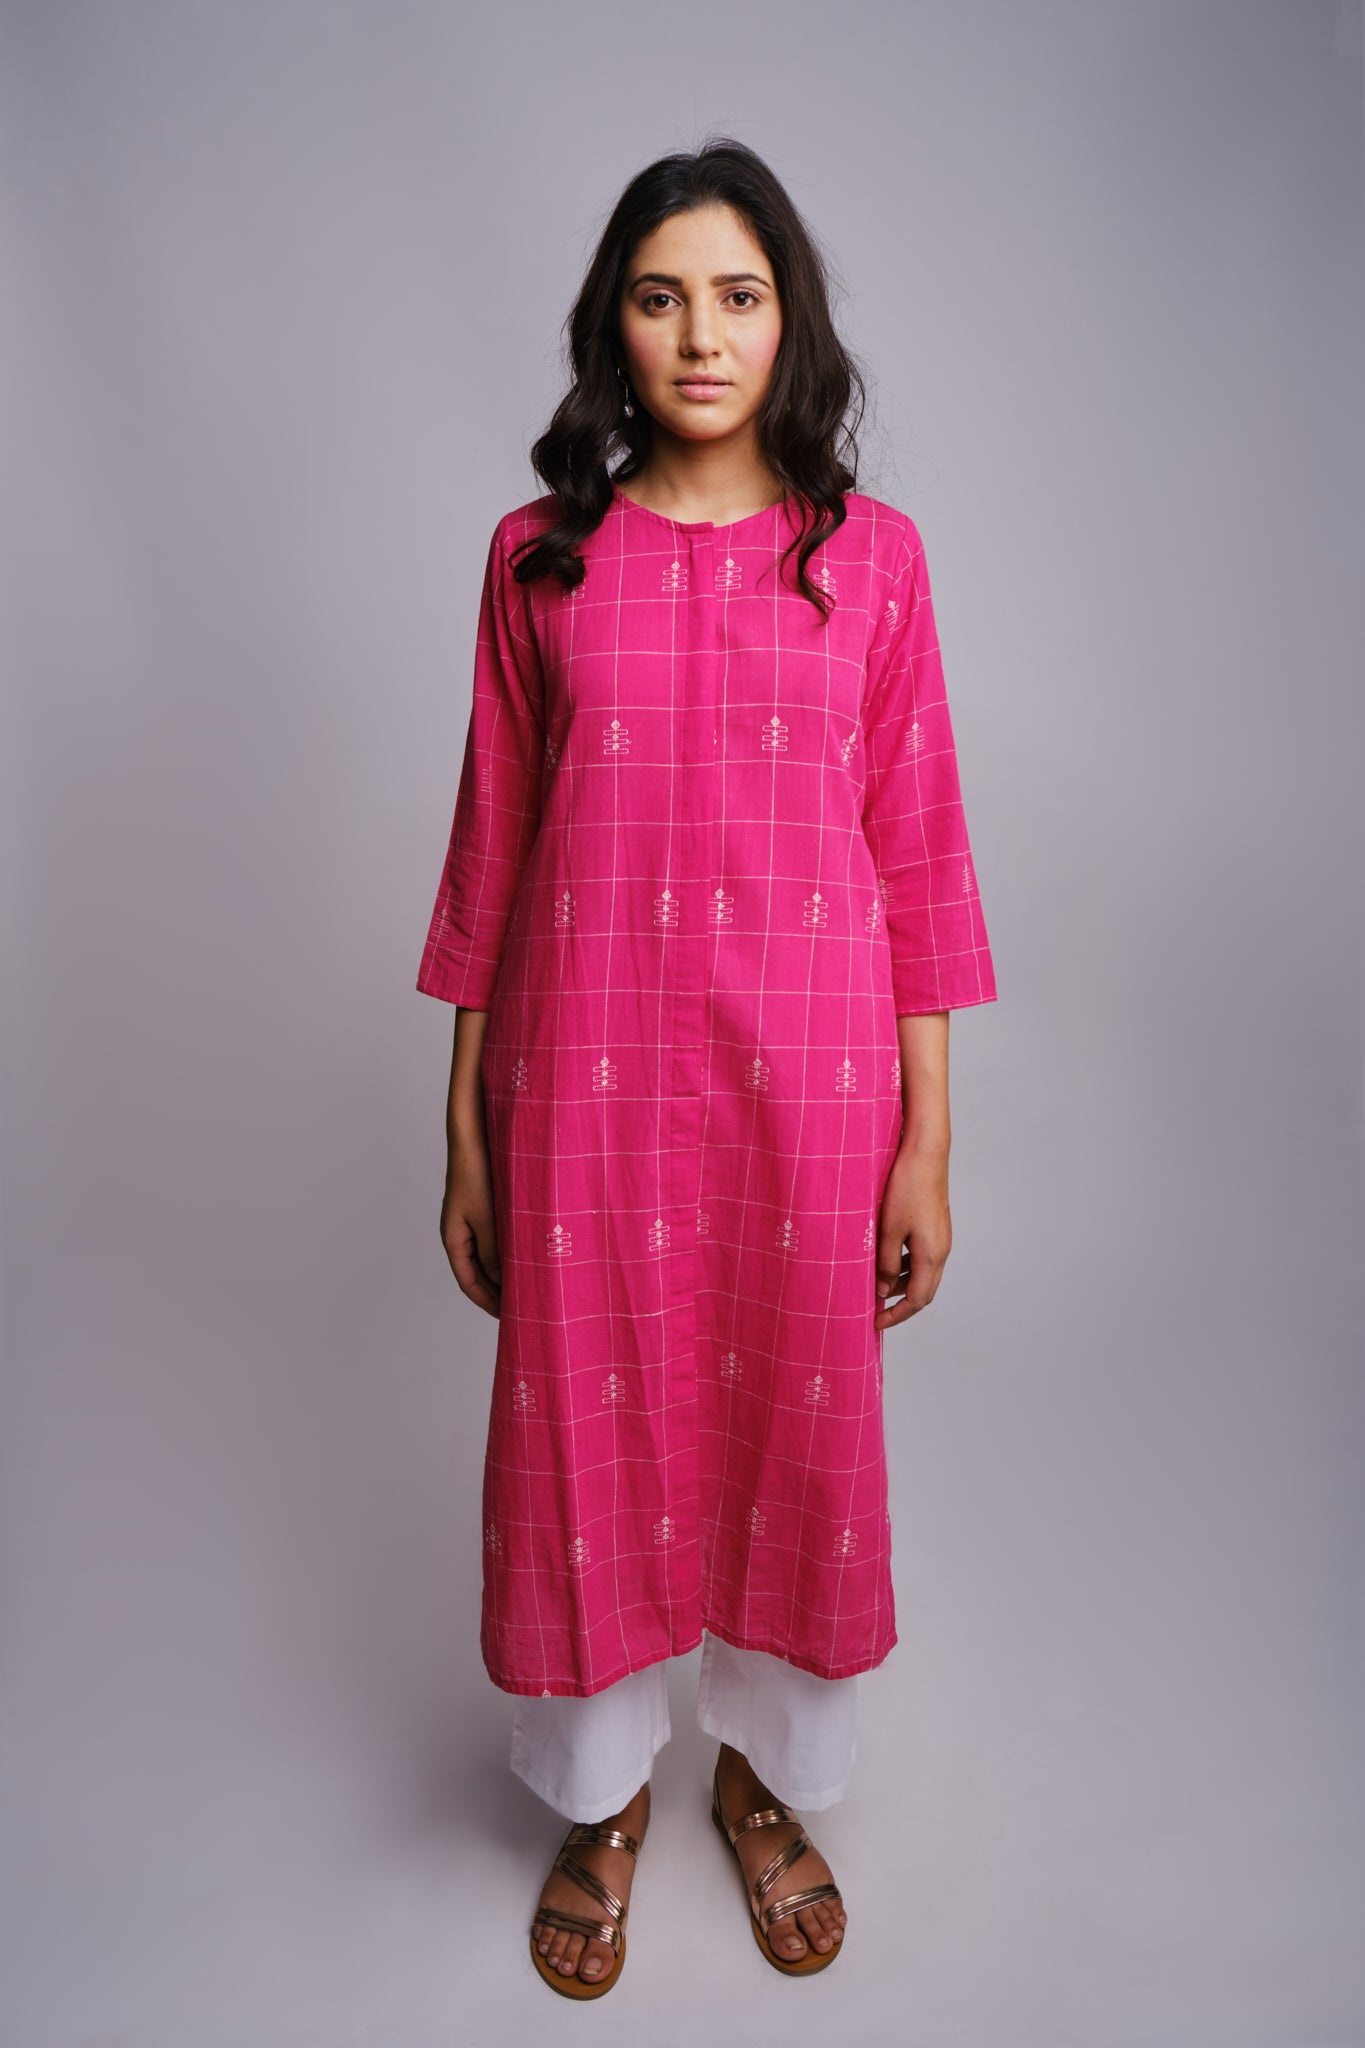 kala cotton organic handwoven button down pink kurta tunic